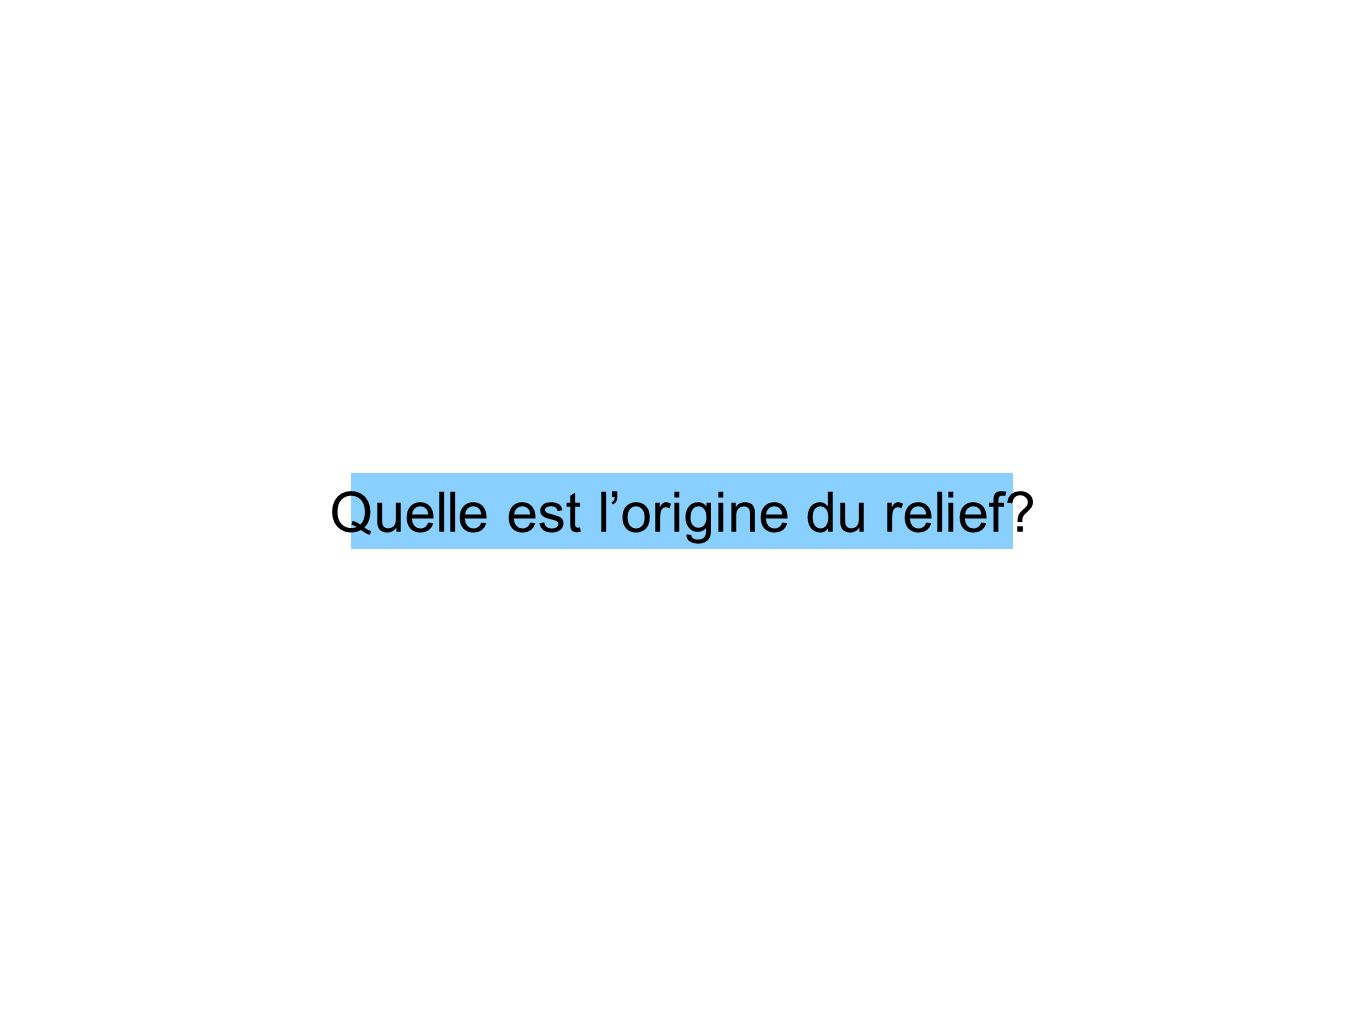 Quelle est lorigine du relief?